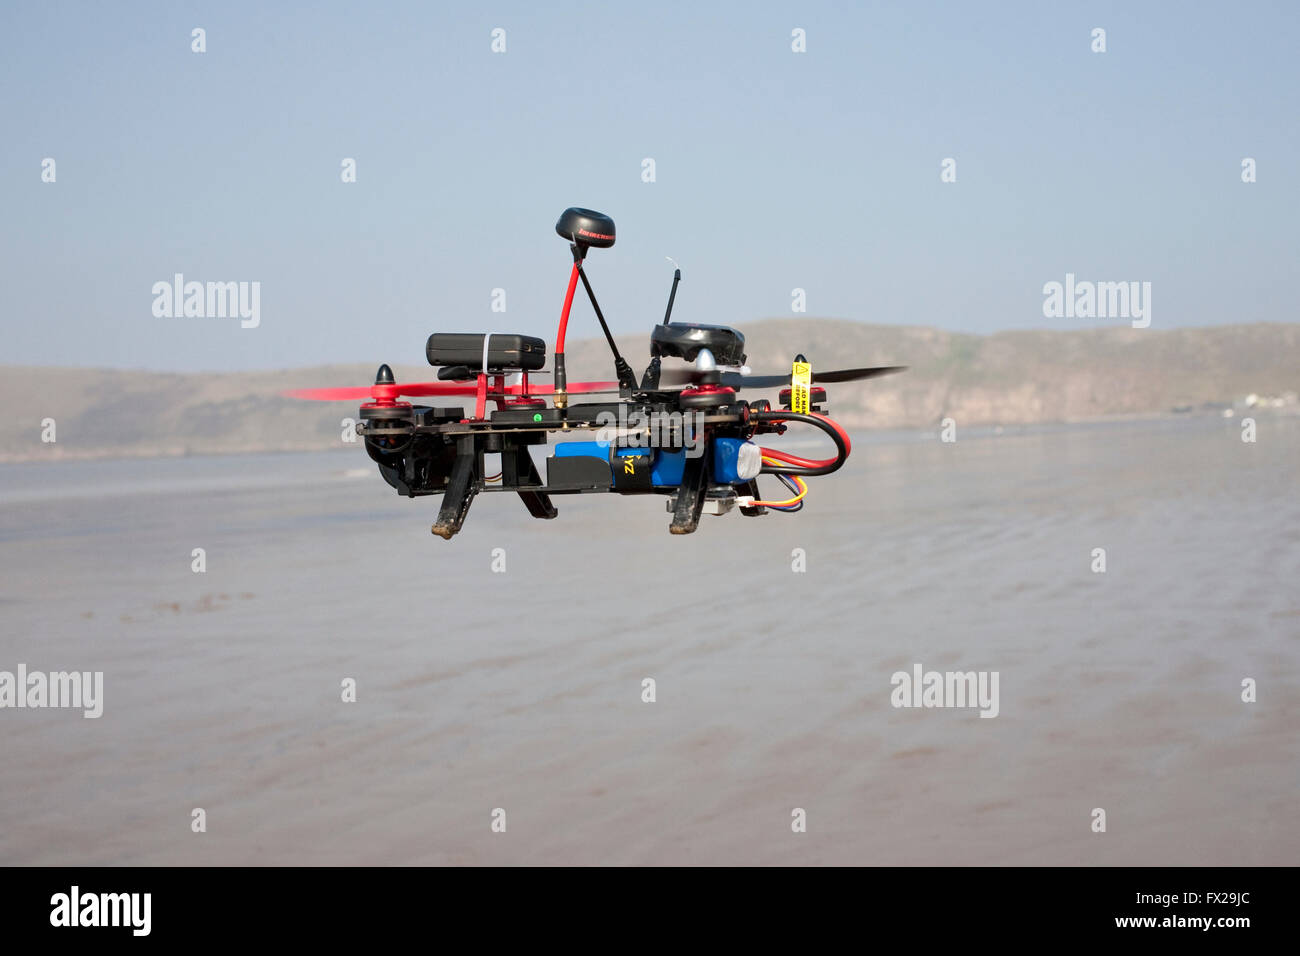 radio controlled drone being flown on an empty beach - Stock Image